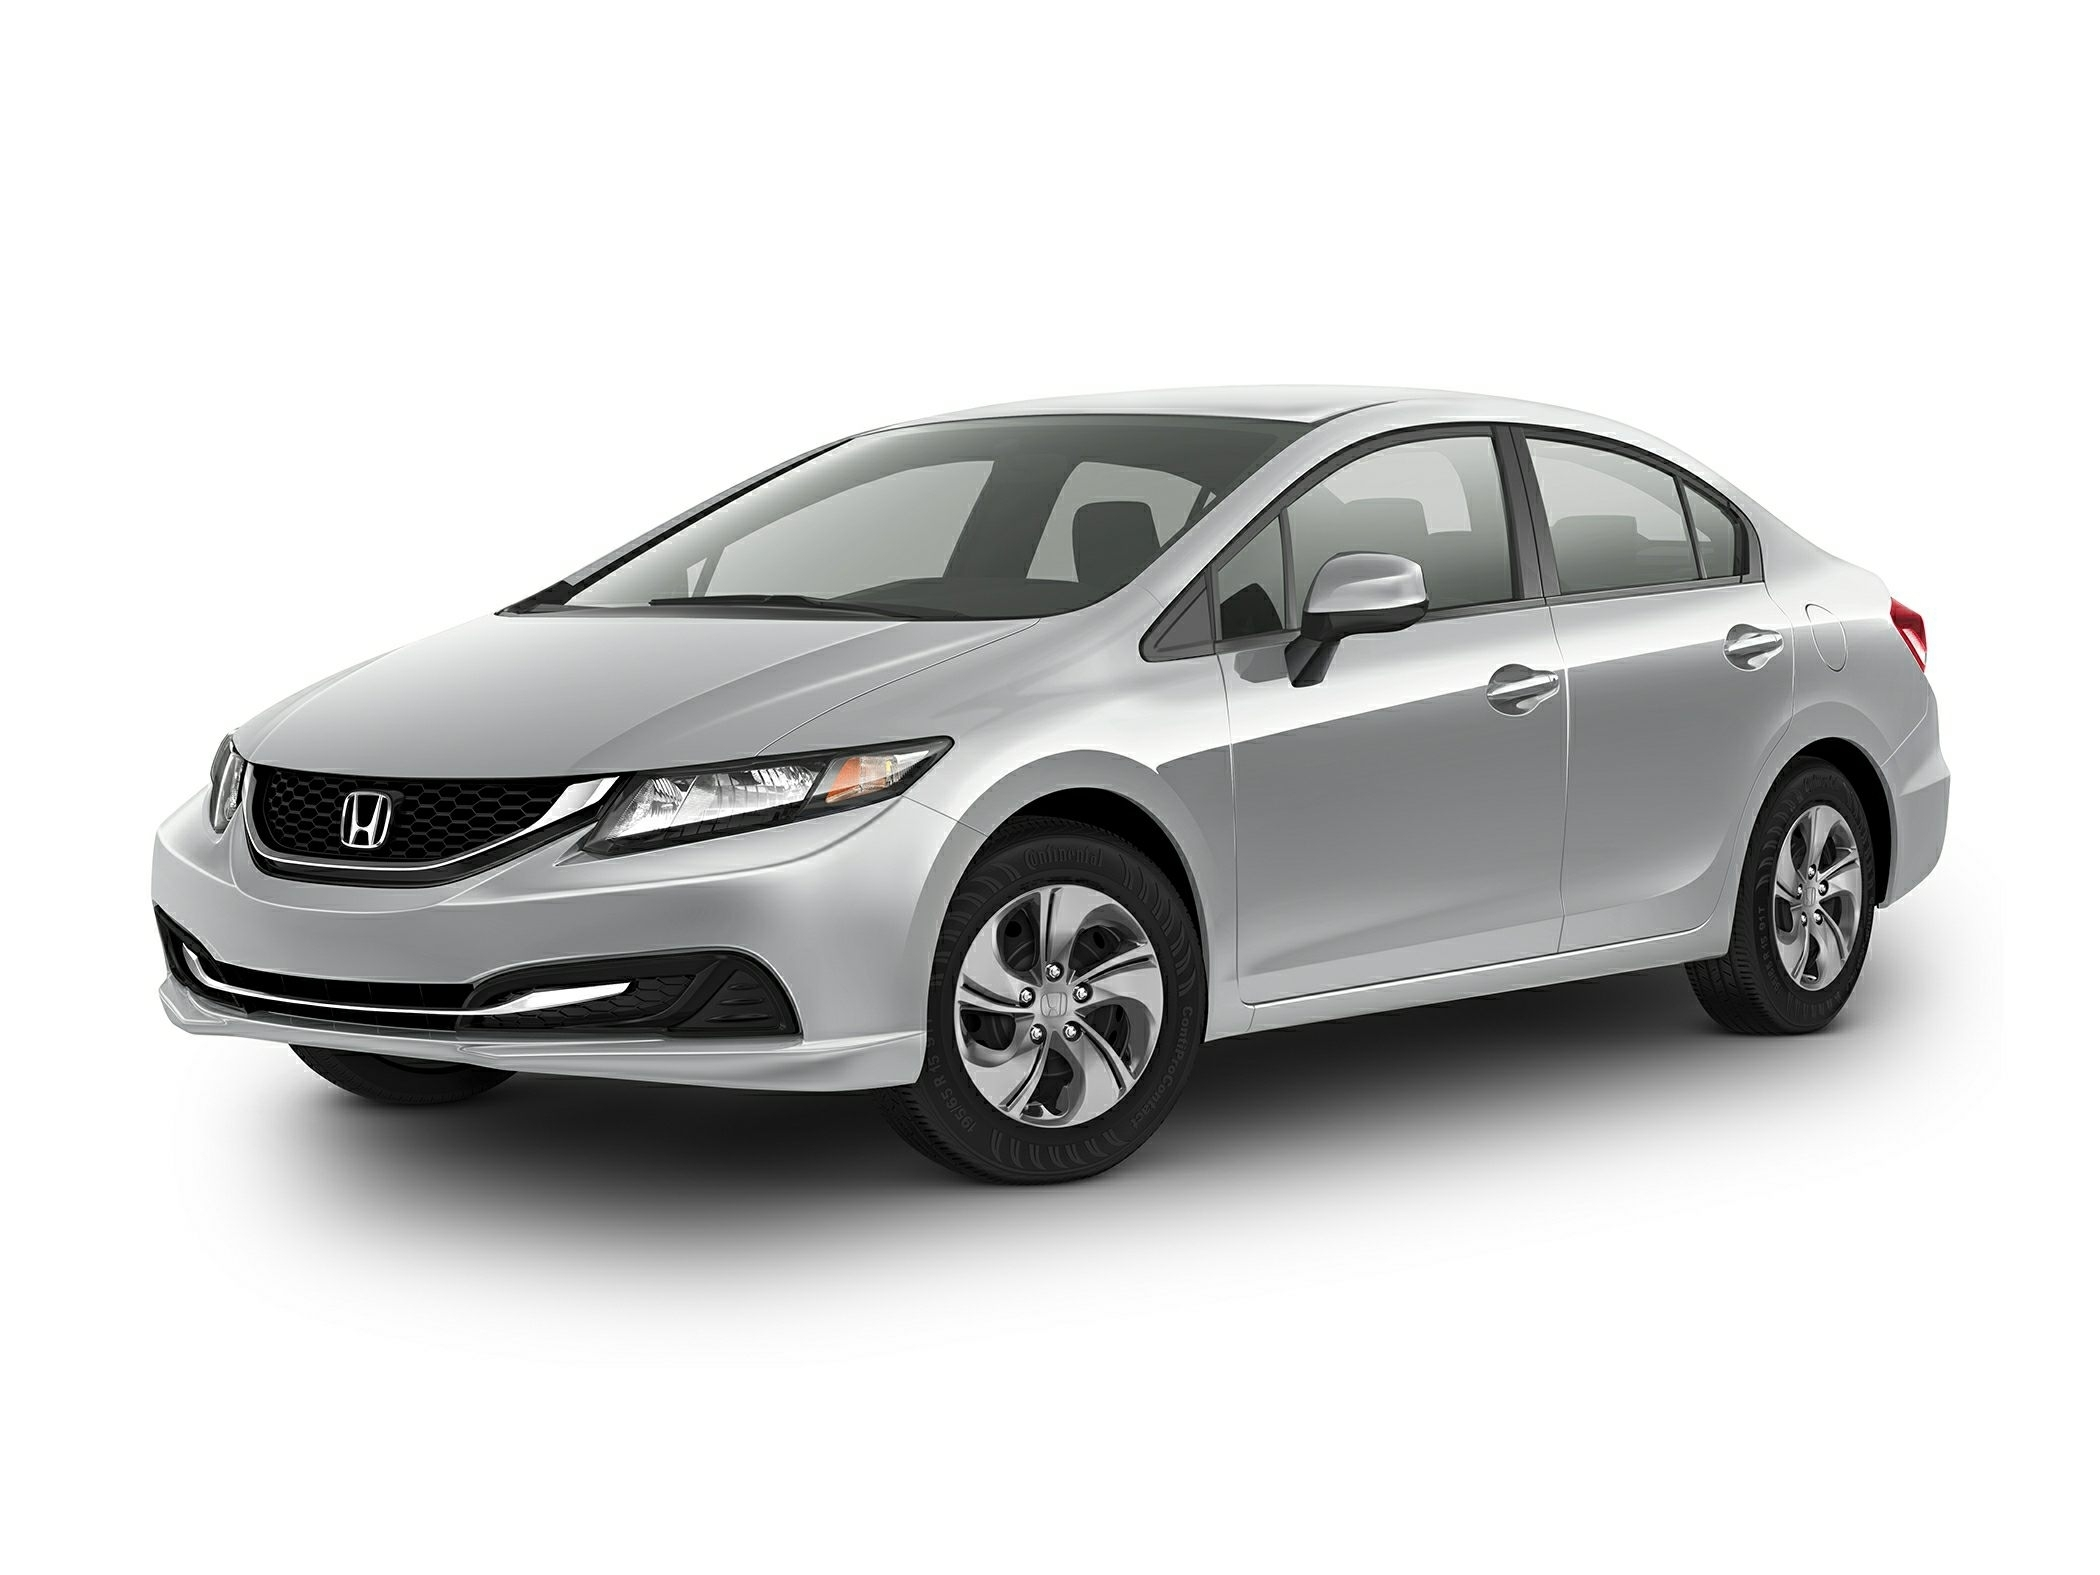 honda accord invoice price invoice template ideas 2015 honda accord invoice